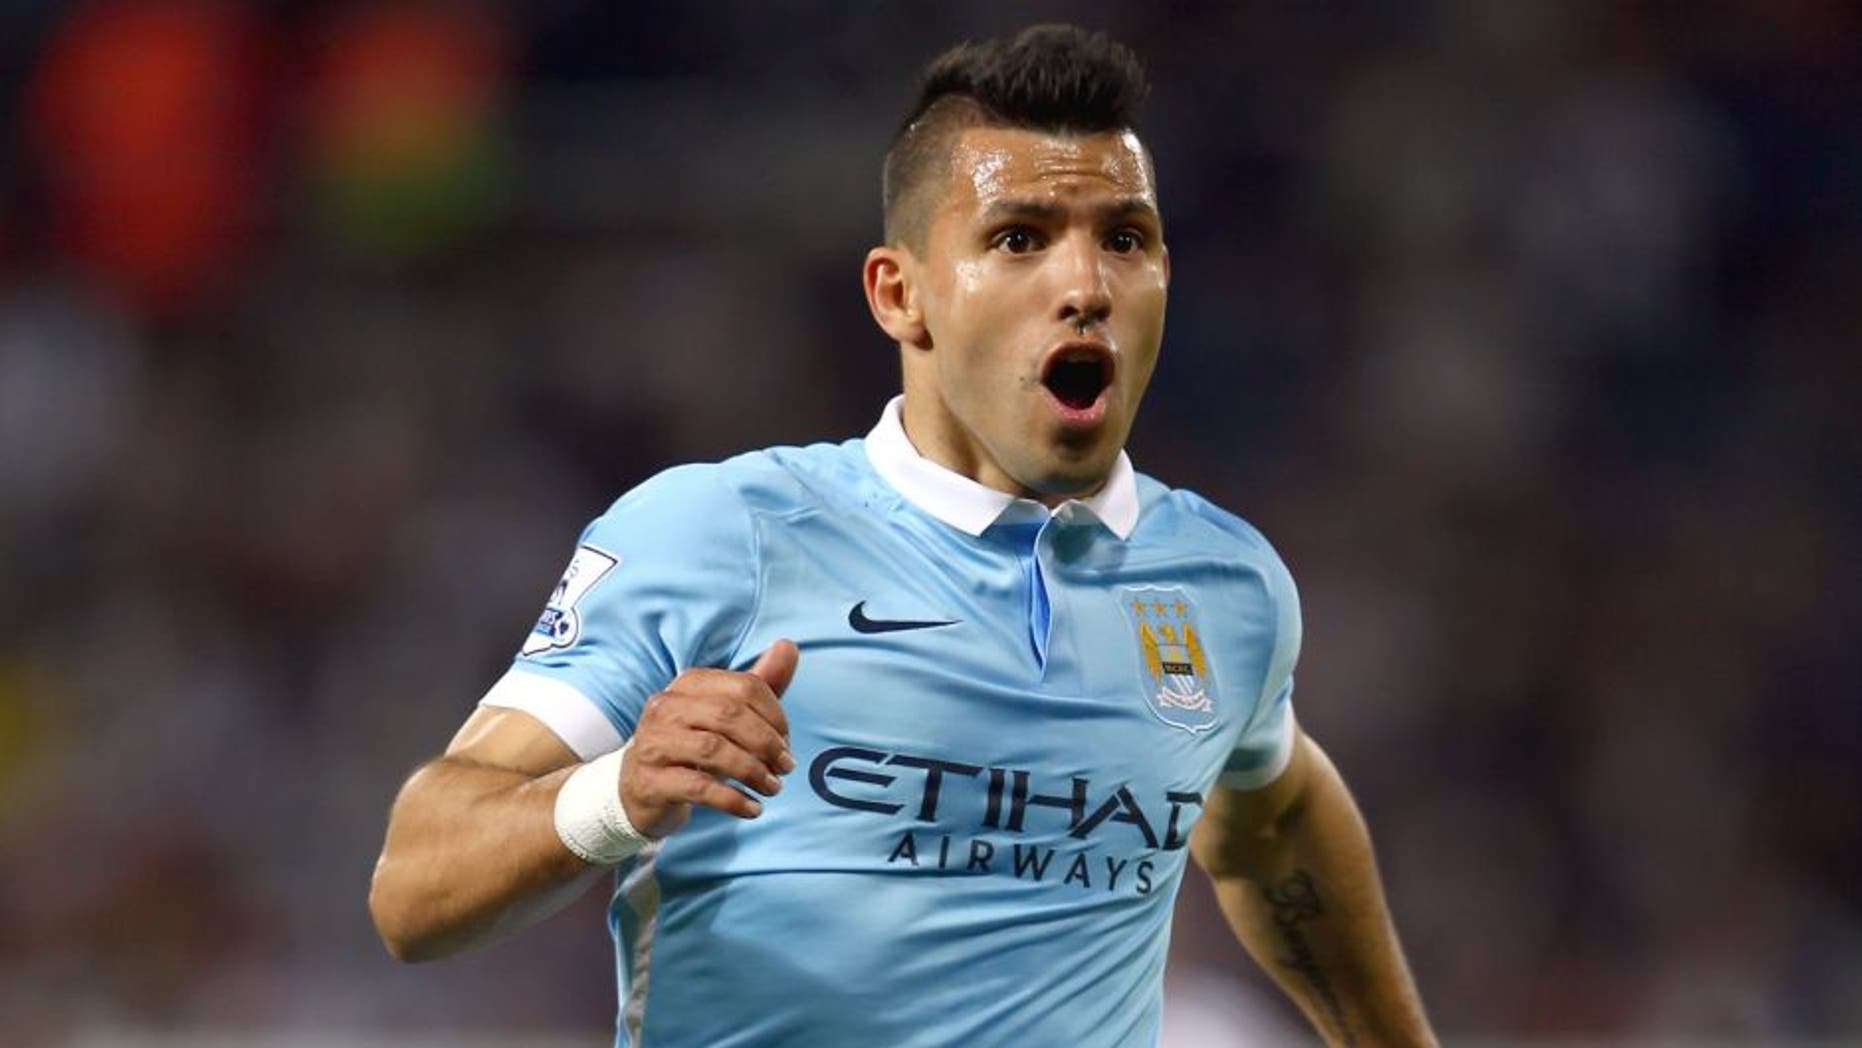 WEST BROMWICH, ENGLAND - AUGUST 10: Sergio Aguero of Manchester City during the Barclays Premier League match between West Bromwich Albion and Manchester City at The Hawthorns on August 10, 2015 in West Bromwich, England. (Photo by Michael Steele/Getty Images)